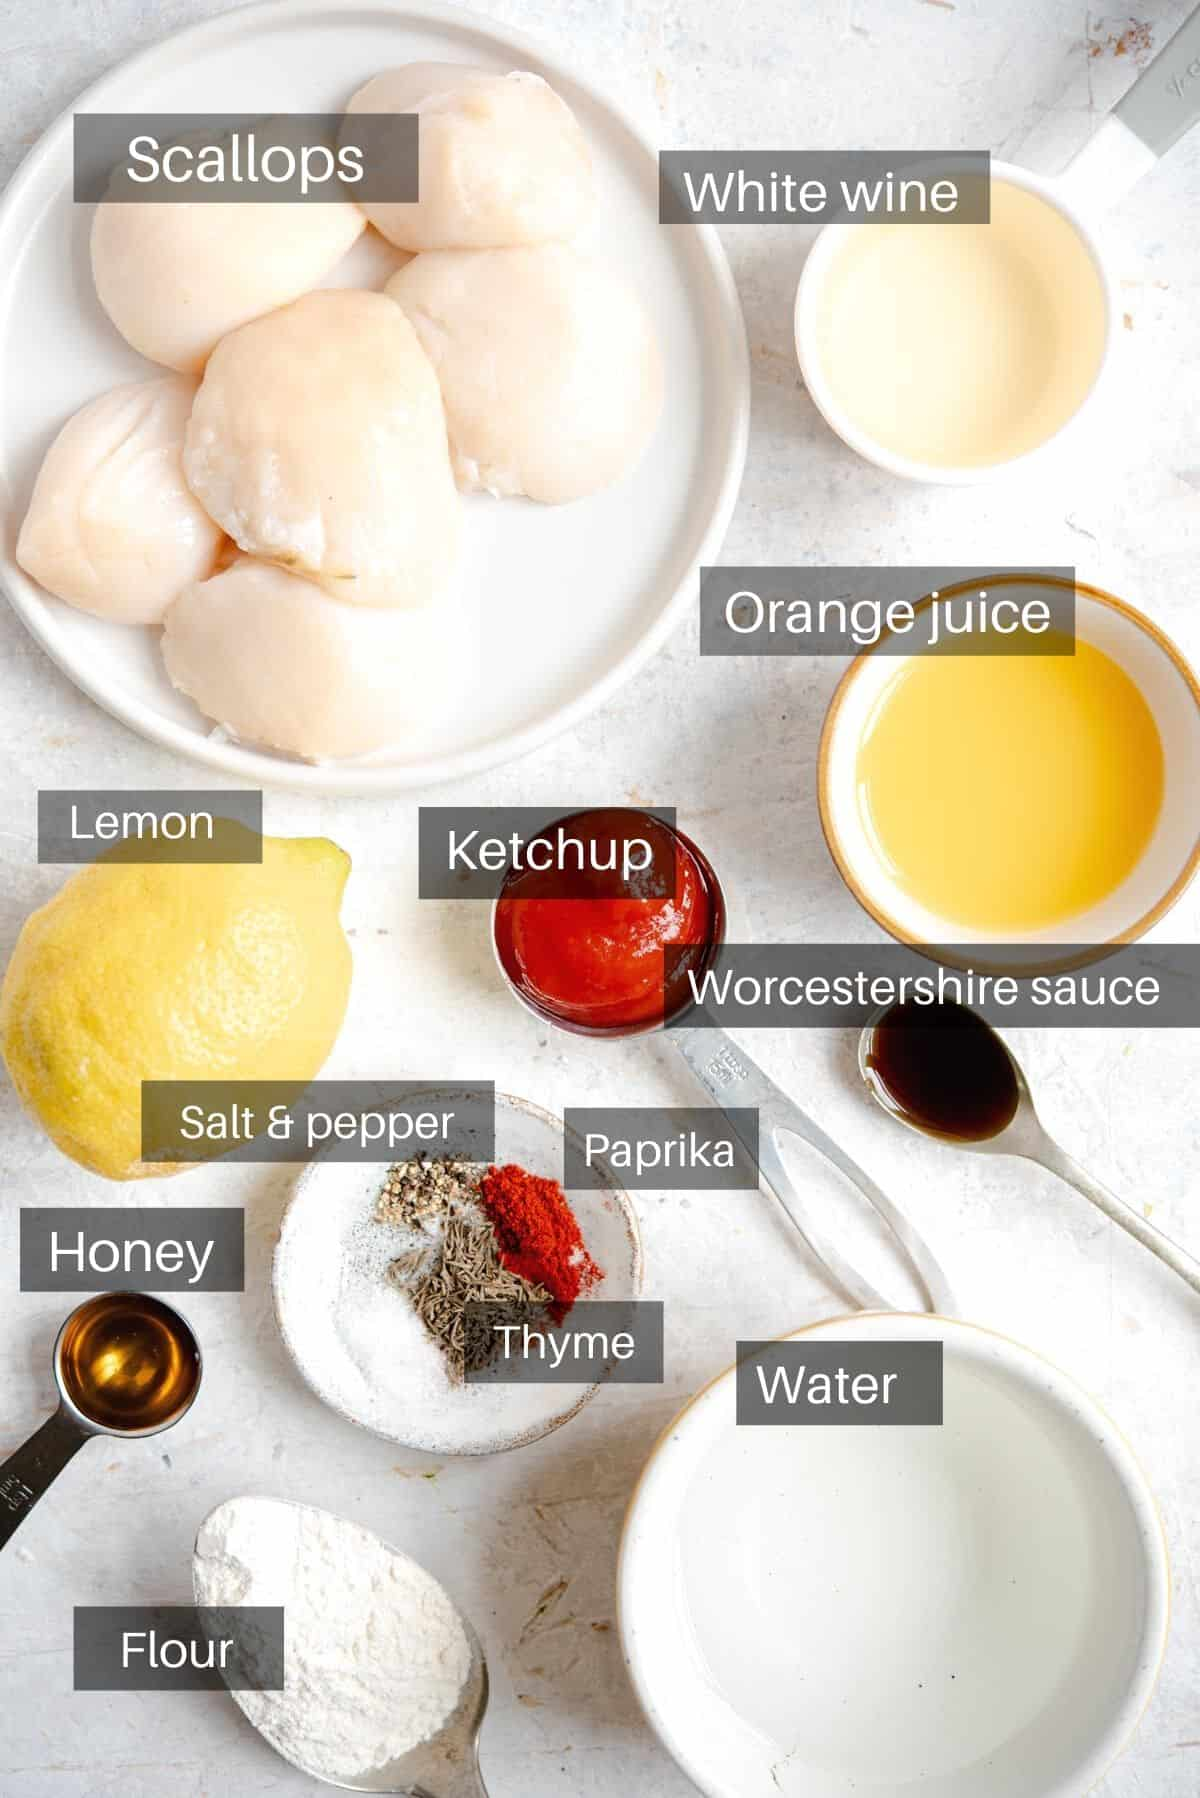 An overhead shot of all the ingredients you need to make sauteed scallops and sauce